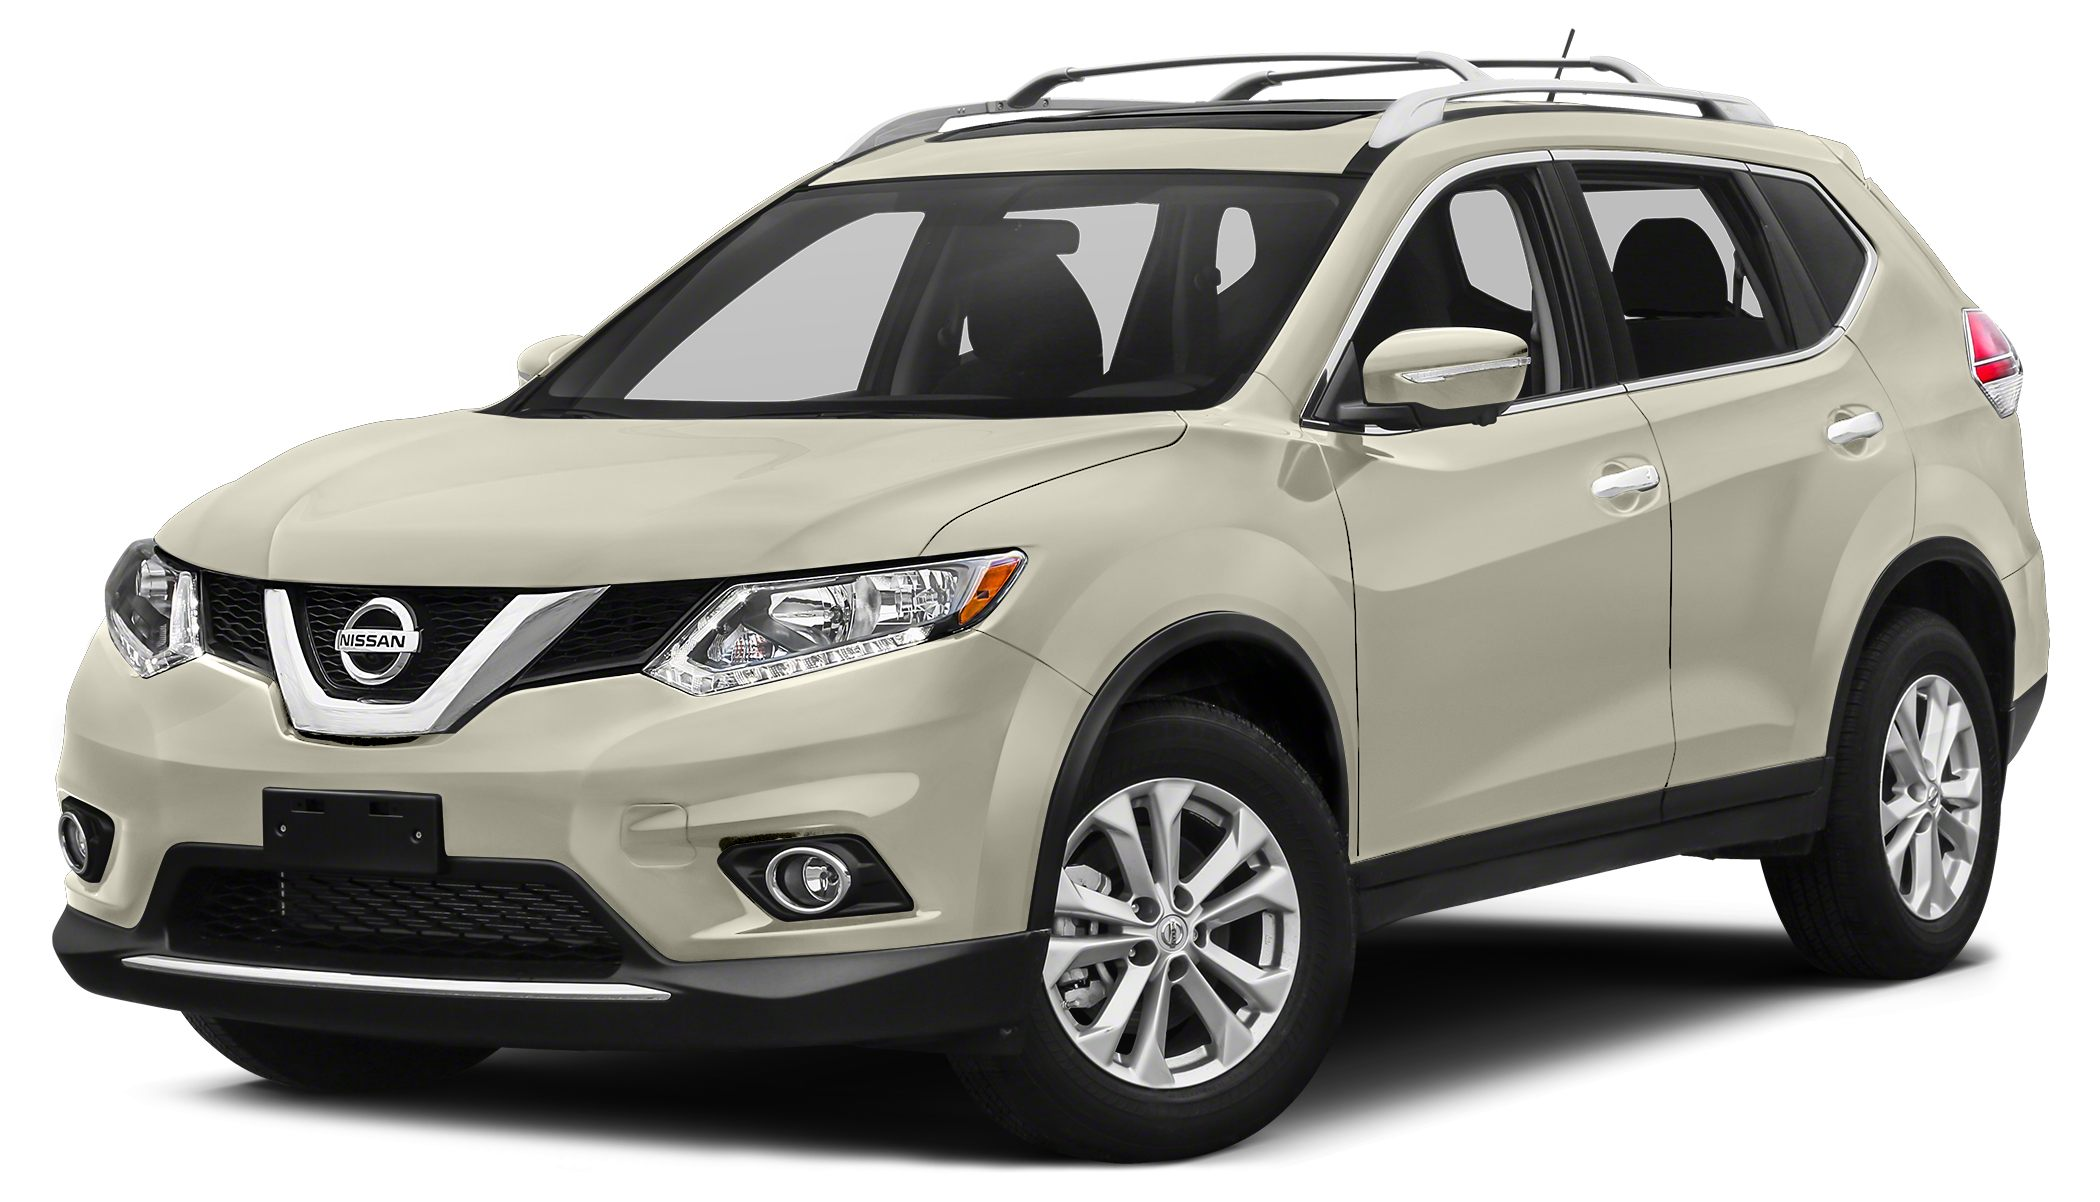 2015 Nissan Rogue SL One Owner   BlueTooth    Hands Free  And FACTORY CERTIFIED PRE-OWNED